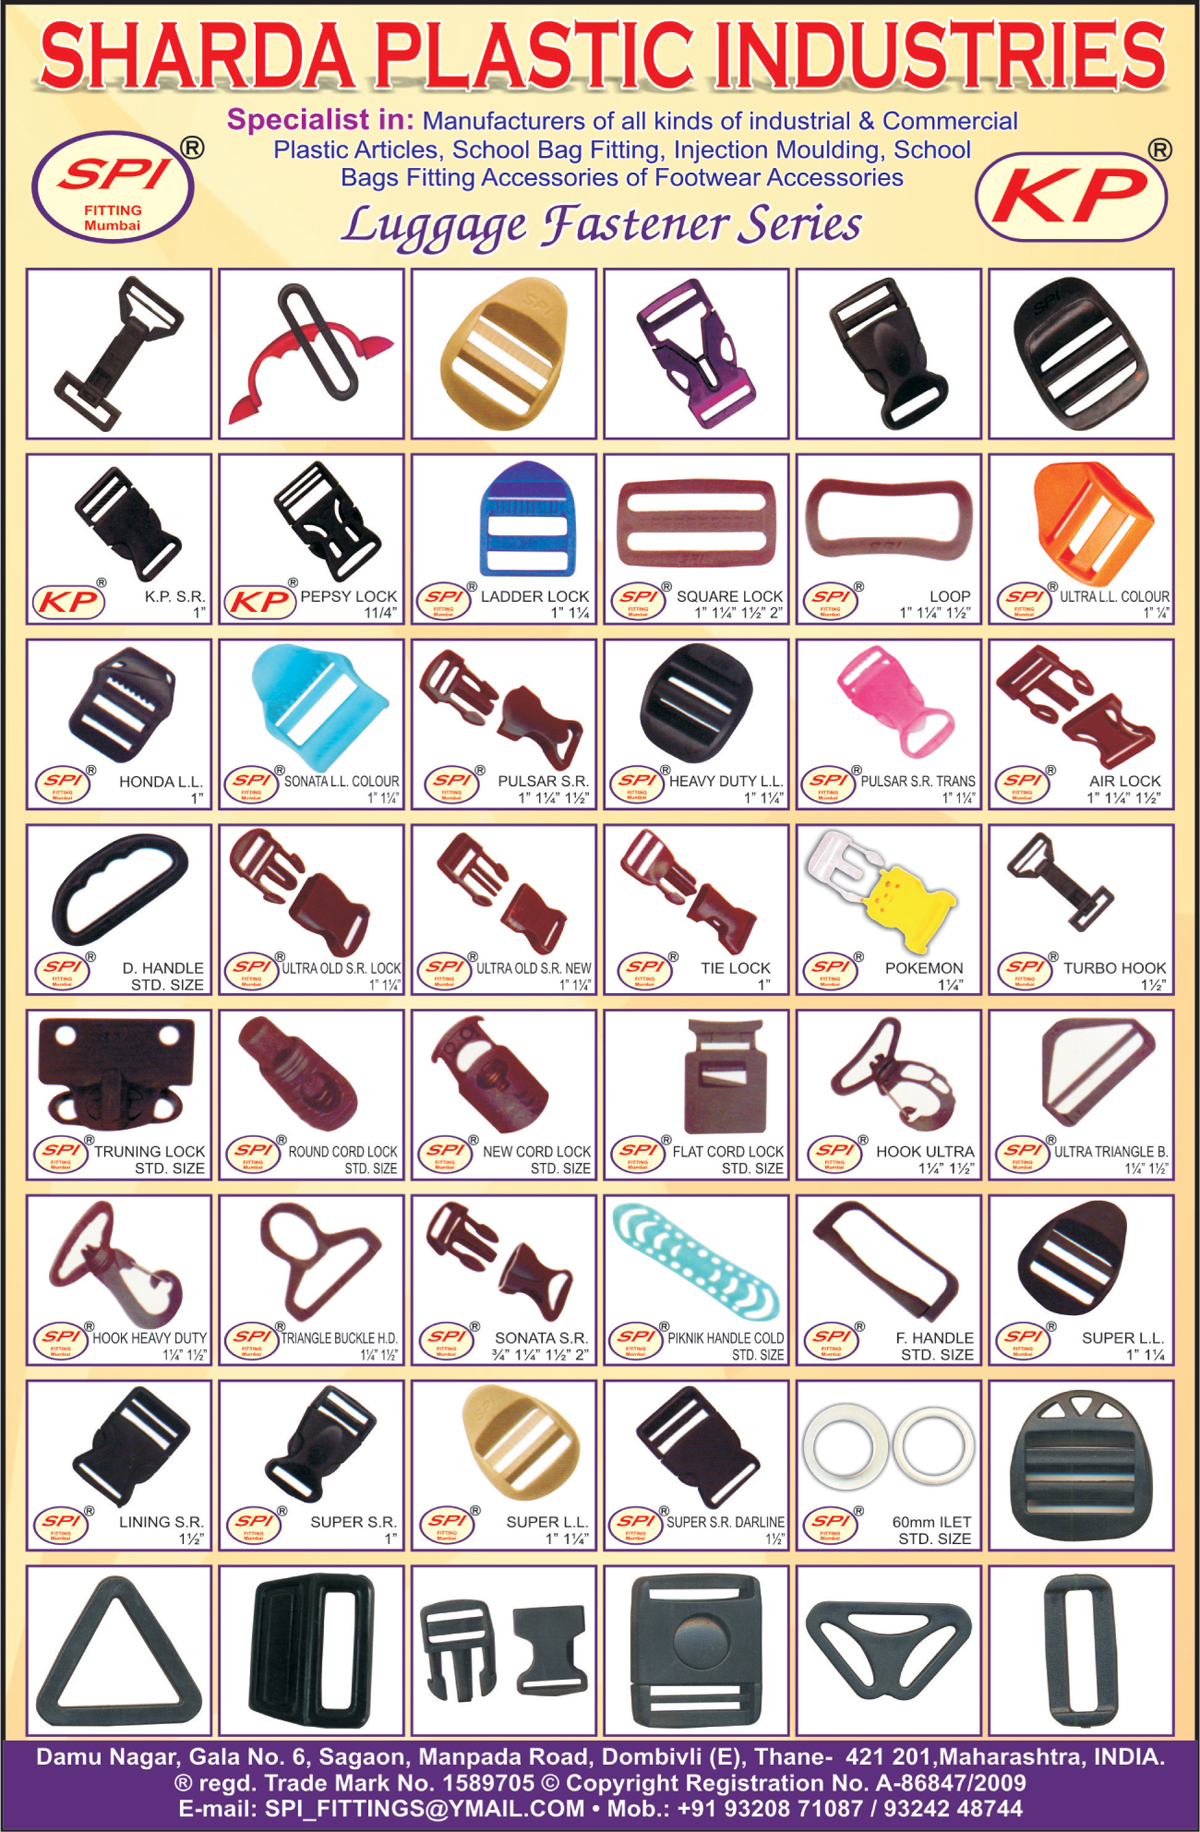 Industrial Plastic Articles, Commercial Plastic Articles, School Bag Fittings, Injection Mouldings, School Bag Fitting Accessories, Footwear Accessories, Luggage Fasteners, Plastic Bag Buckles, Plastic Bag Handles,Plastic Articles